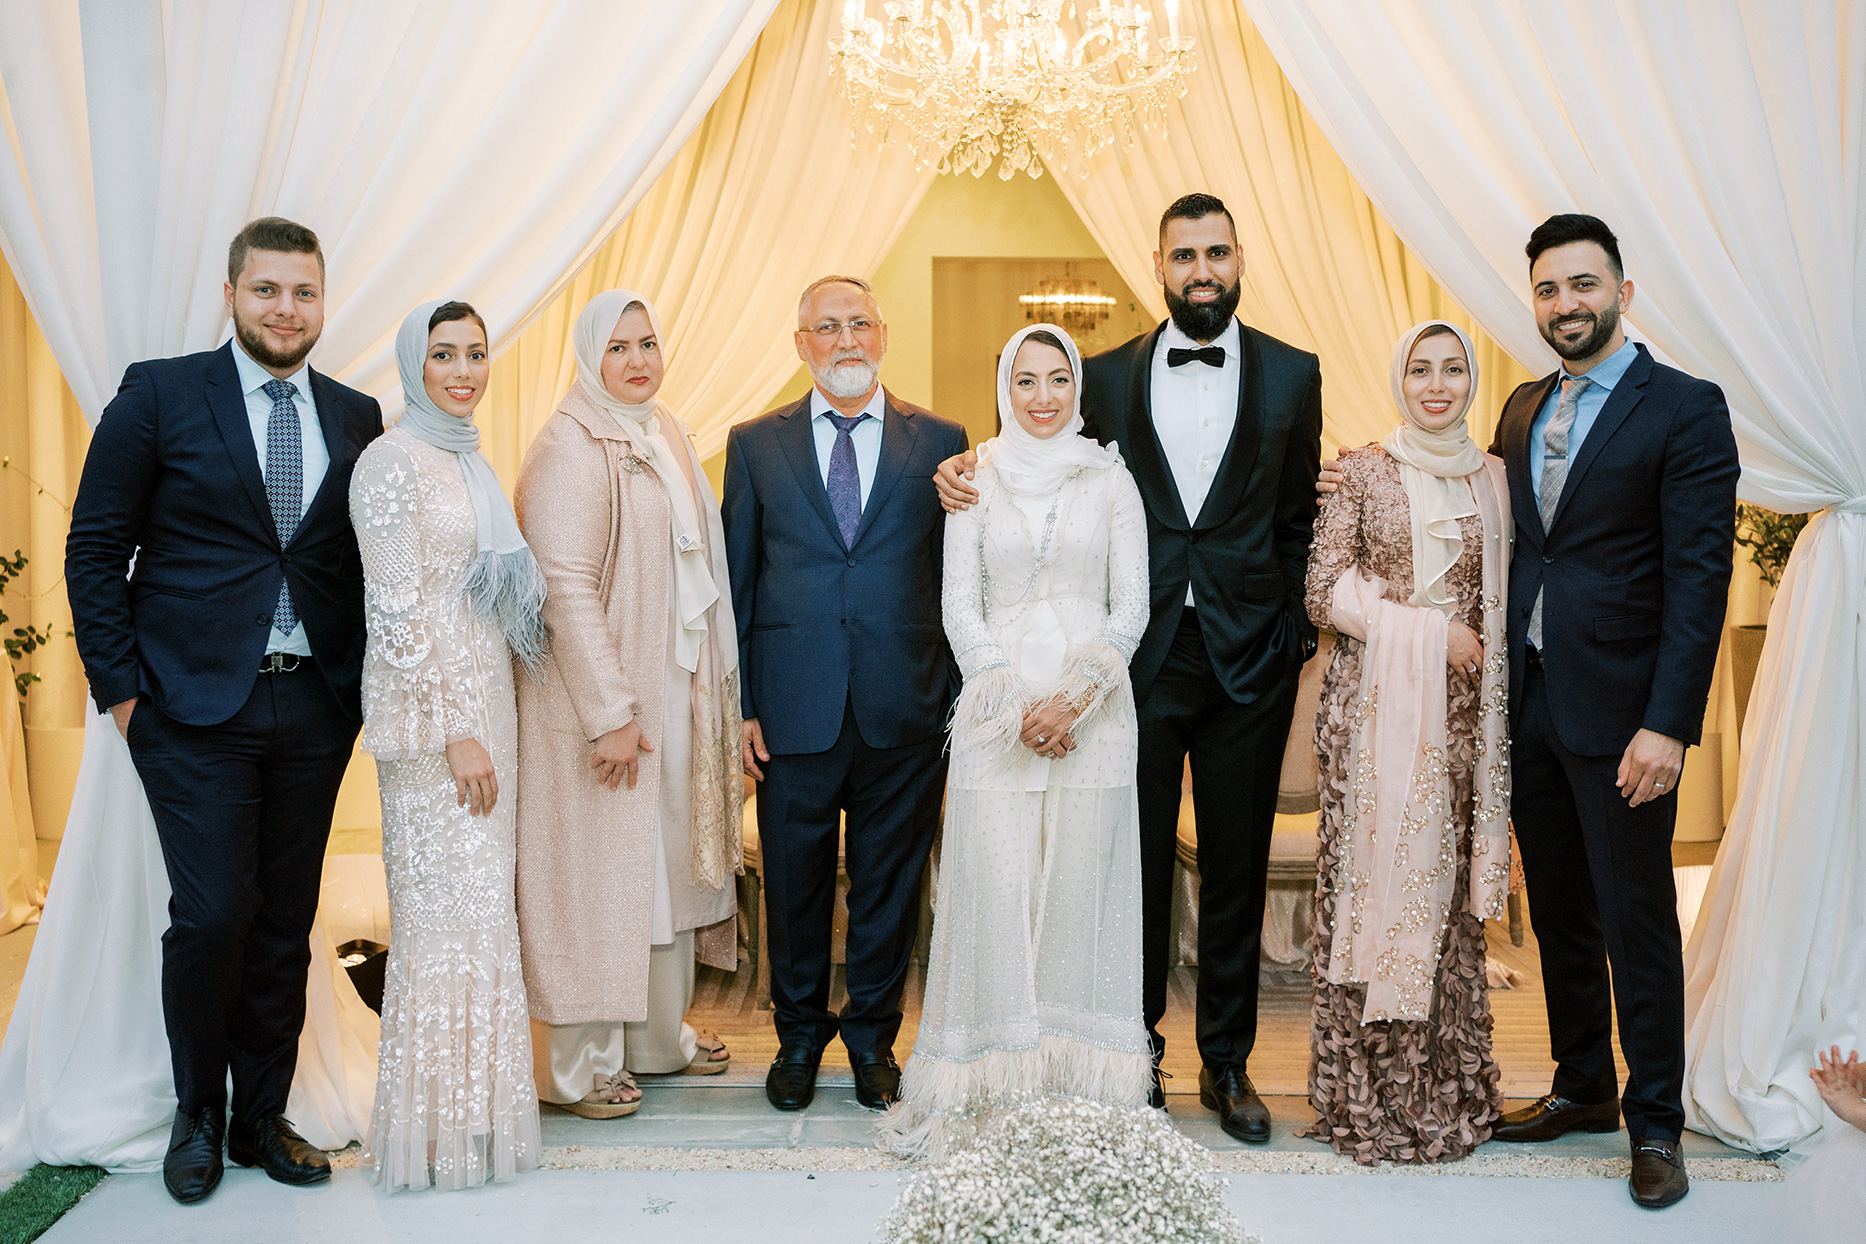 bride and groom standing with family smiling